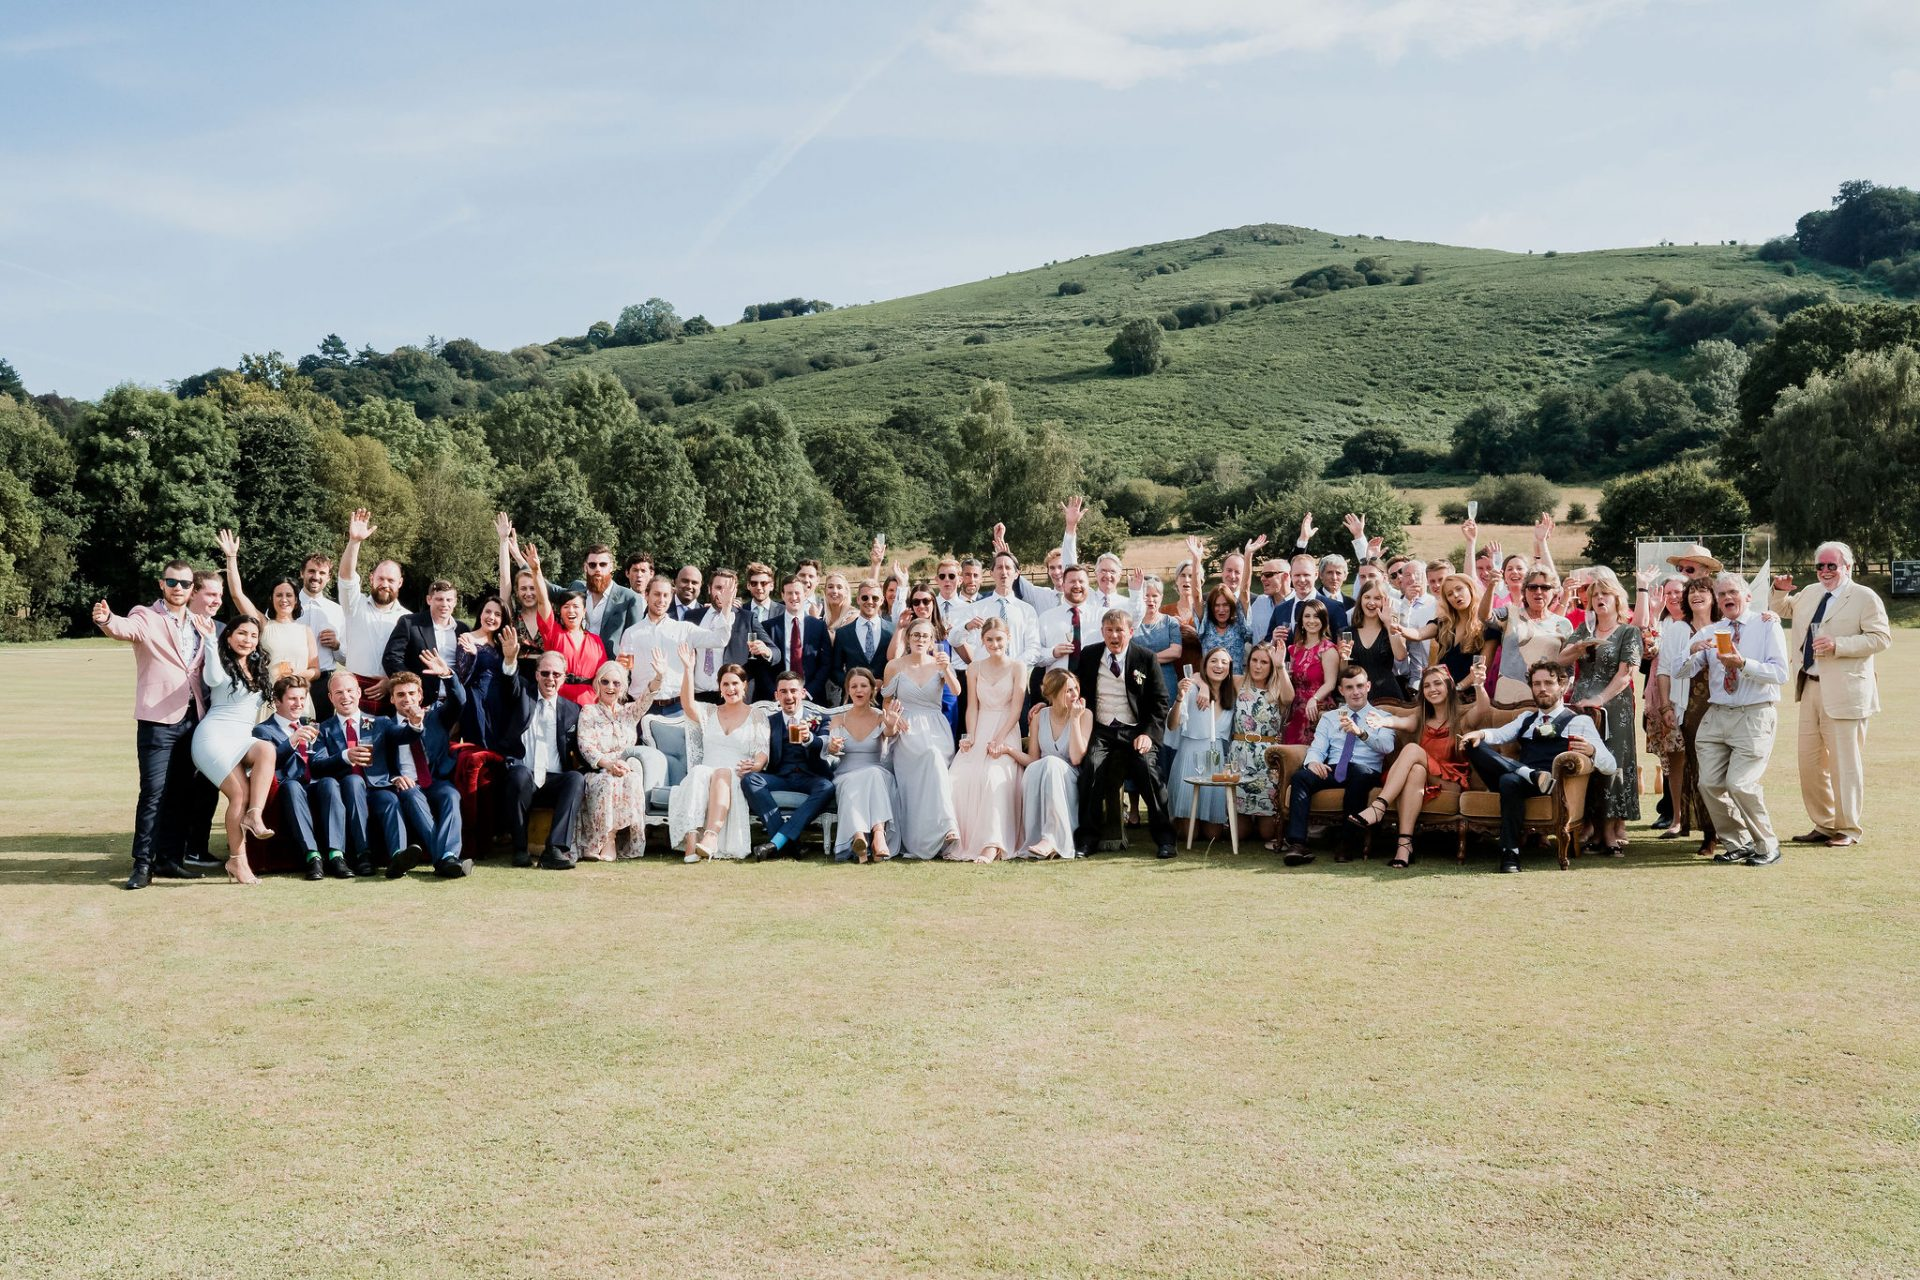 group photo of all wedding guests on dartmoor